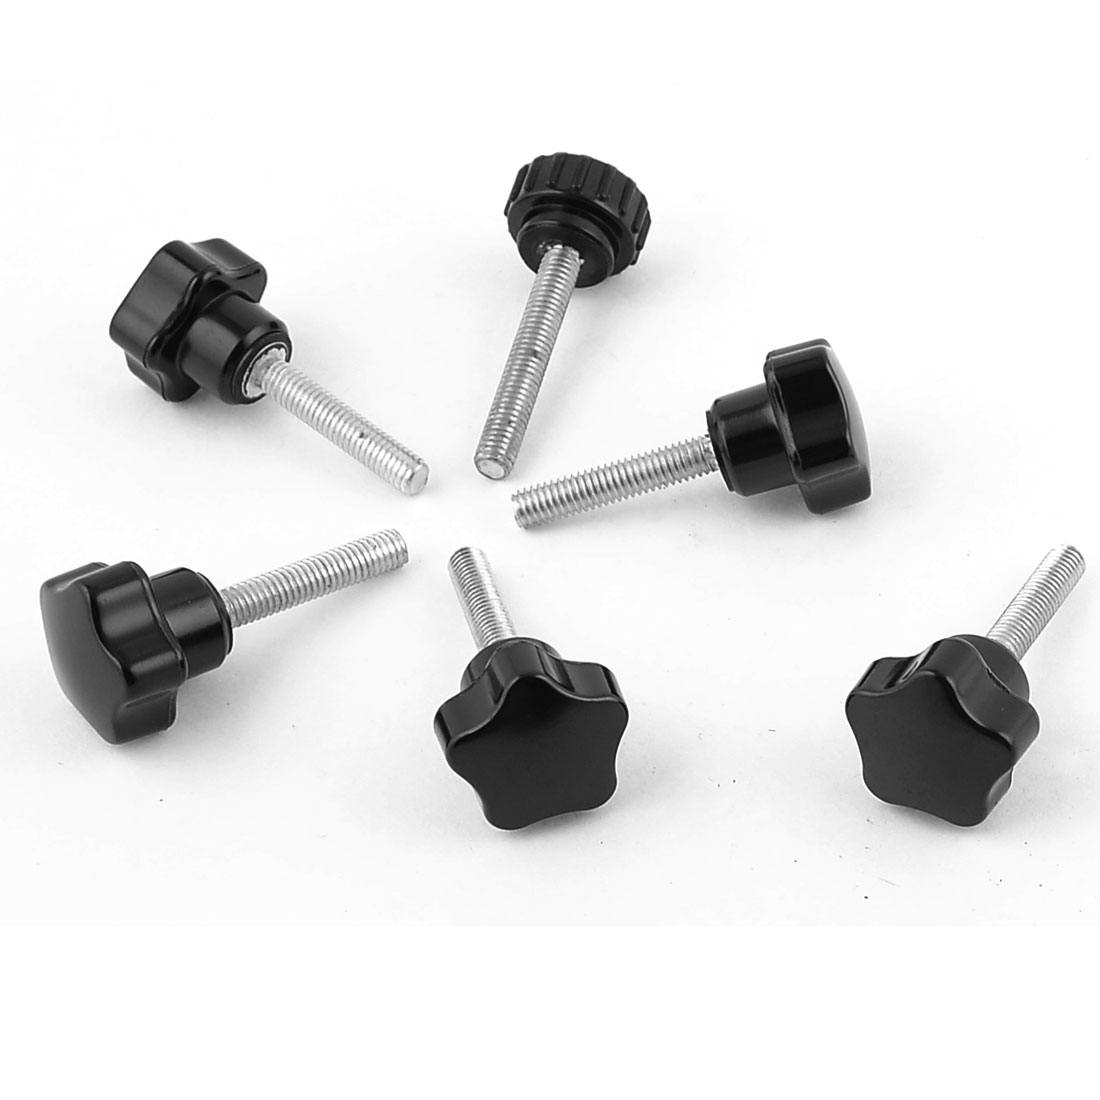 6 Pcs Black Spare Part M6 x 40mm Male Threaded Knurled Grip Star Knob